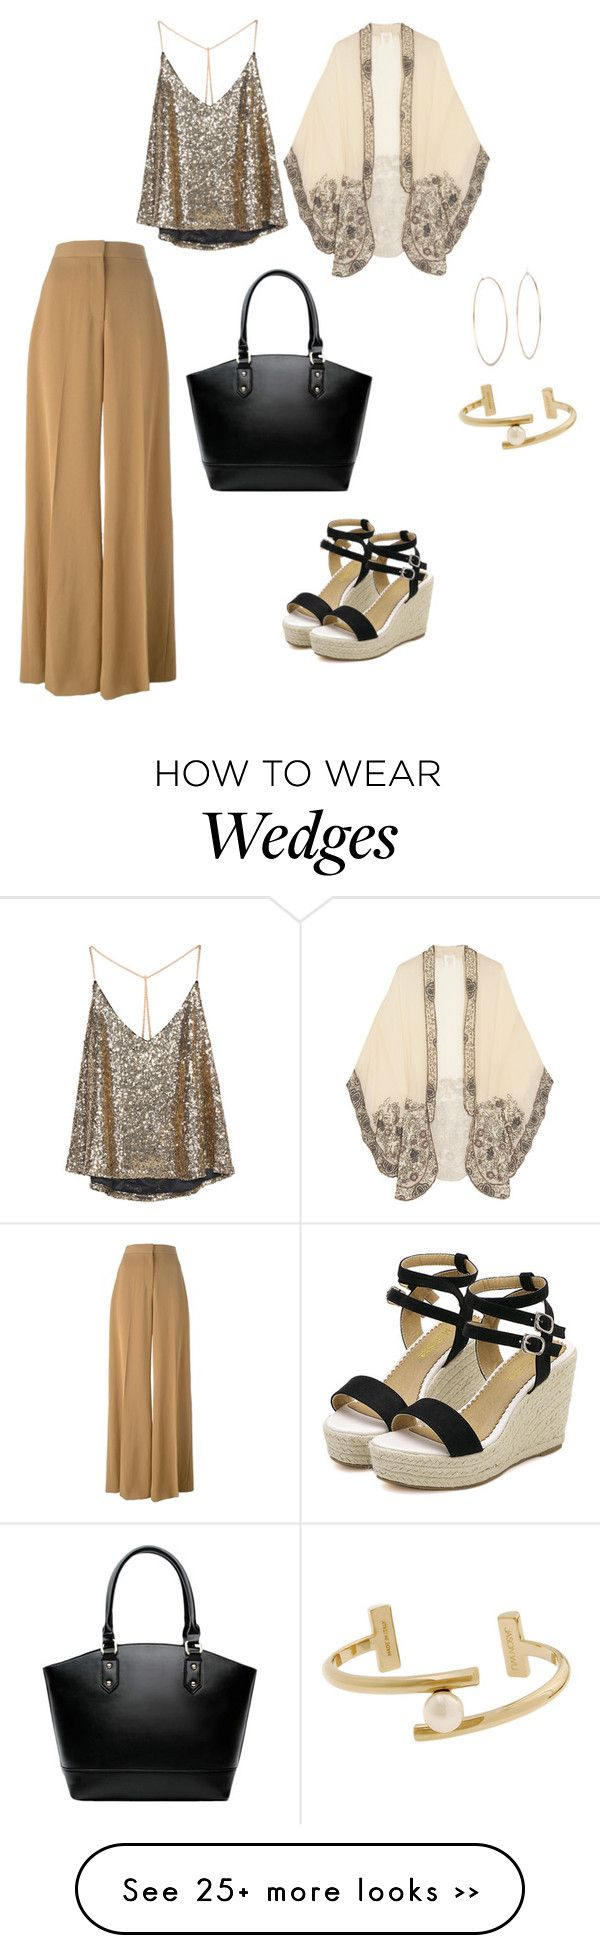 """Untitled #974"" by janicemckay on Polyvore featuring Anna Sui, STELLA McCARTNEY, Michael Kors and Jason Wu"